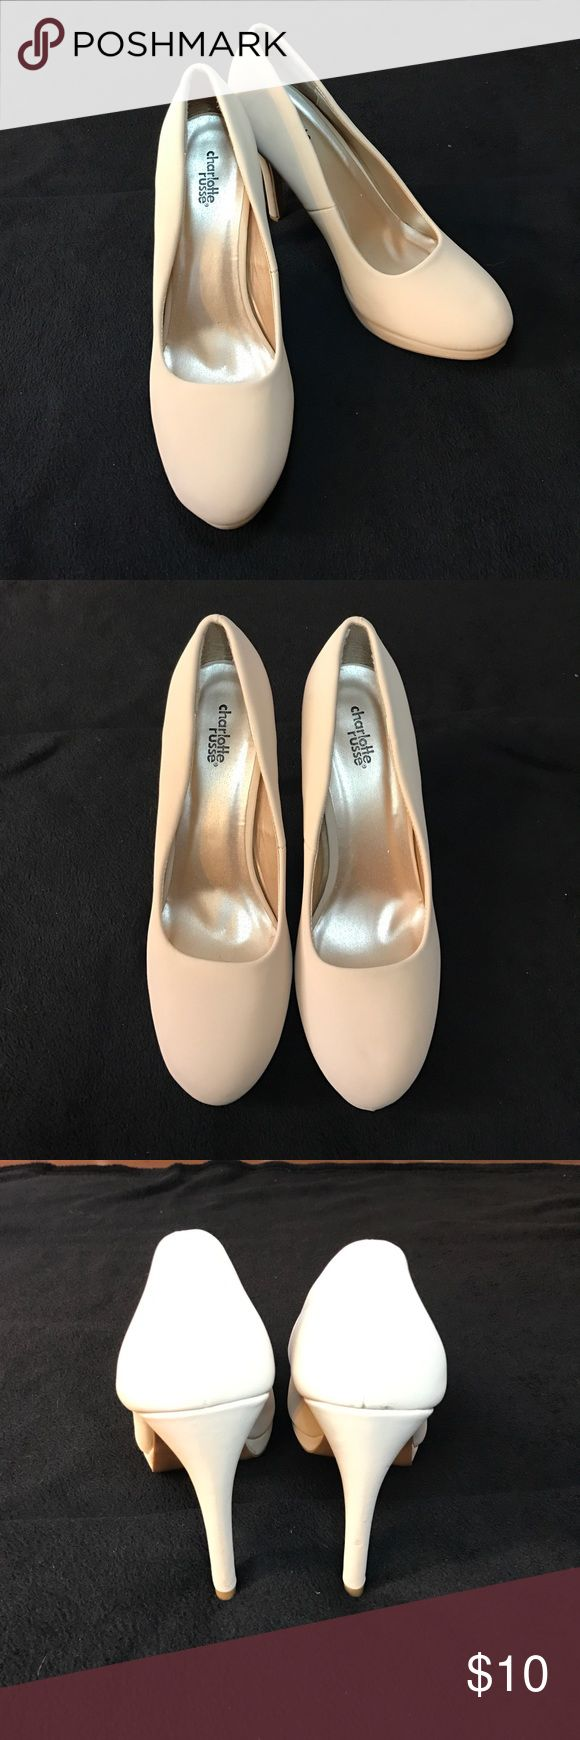 Charlotte Russe Cream High Heels Worn once, gently used, Size 10 Cream Colored Charlotte Russe High Heels. Slight wear and tear as pictured. Charlotte Russe Shoes Heels